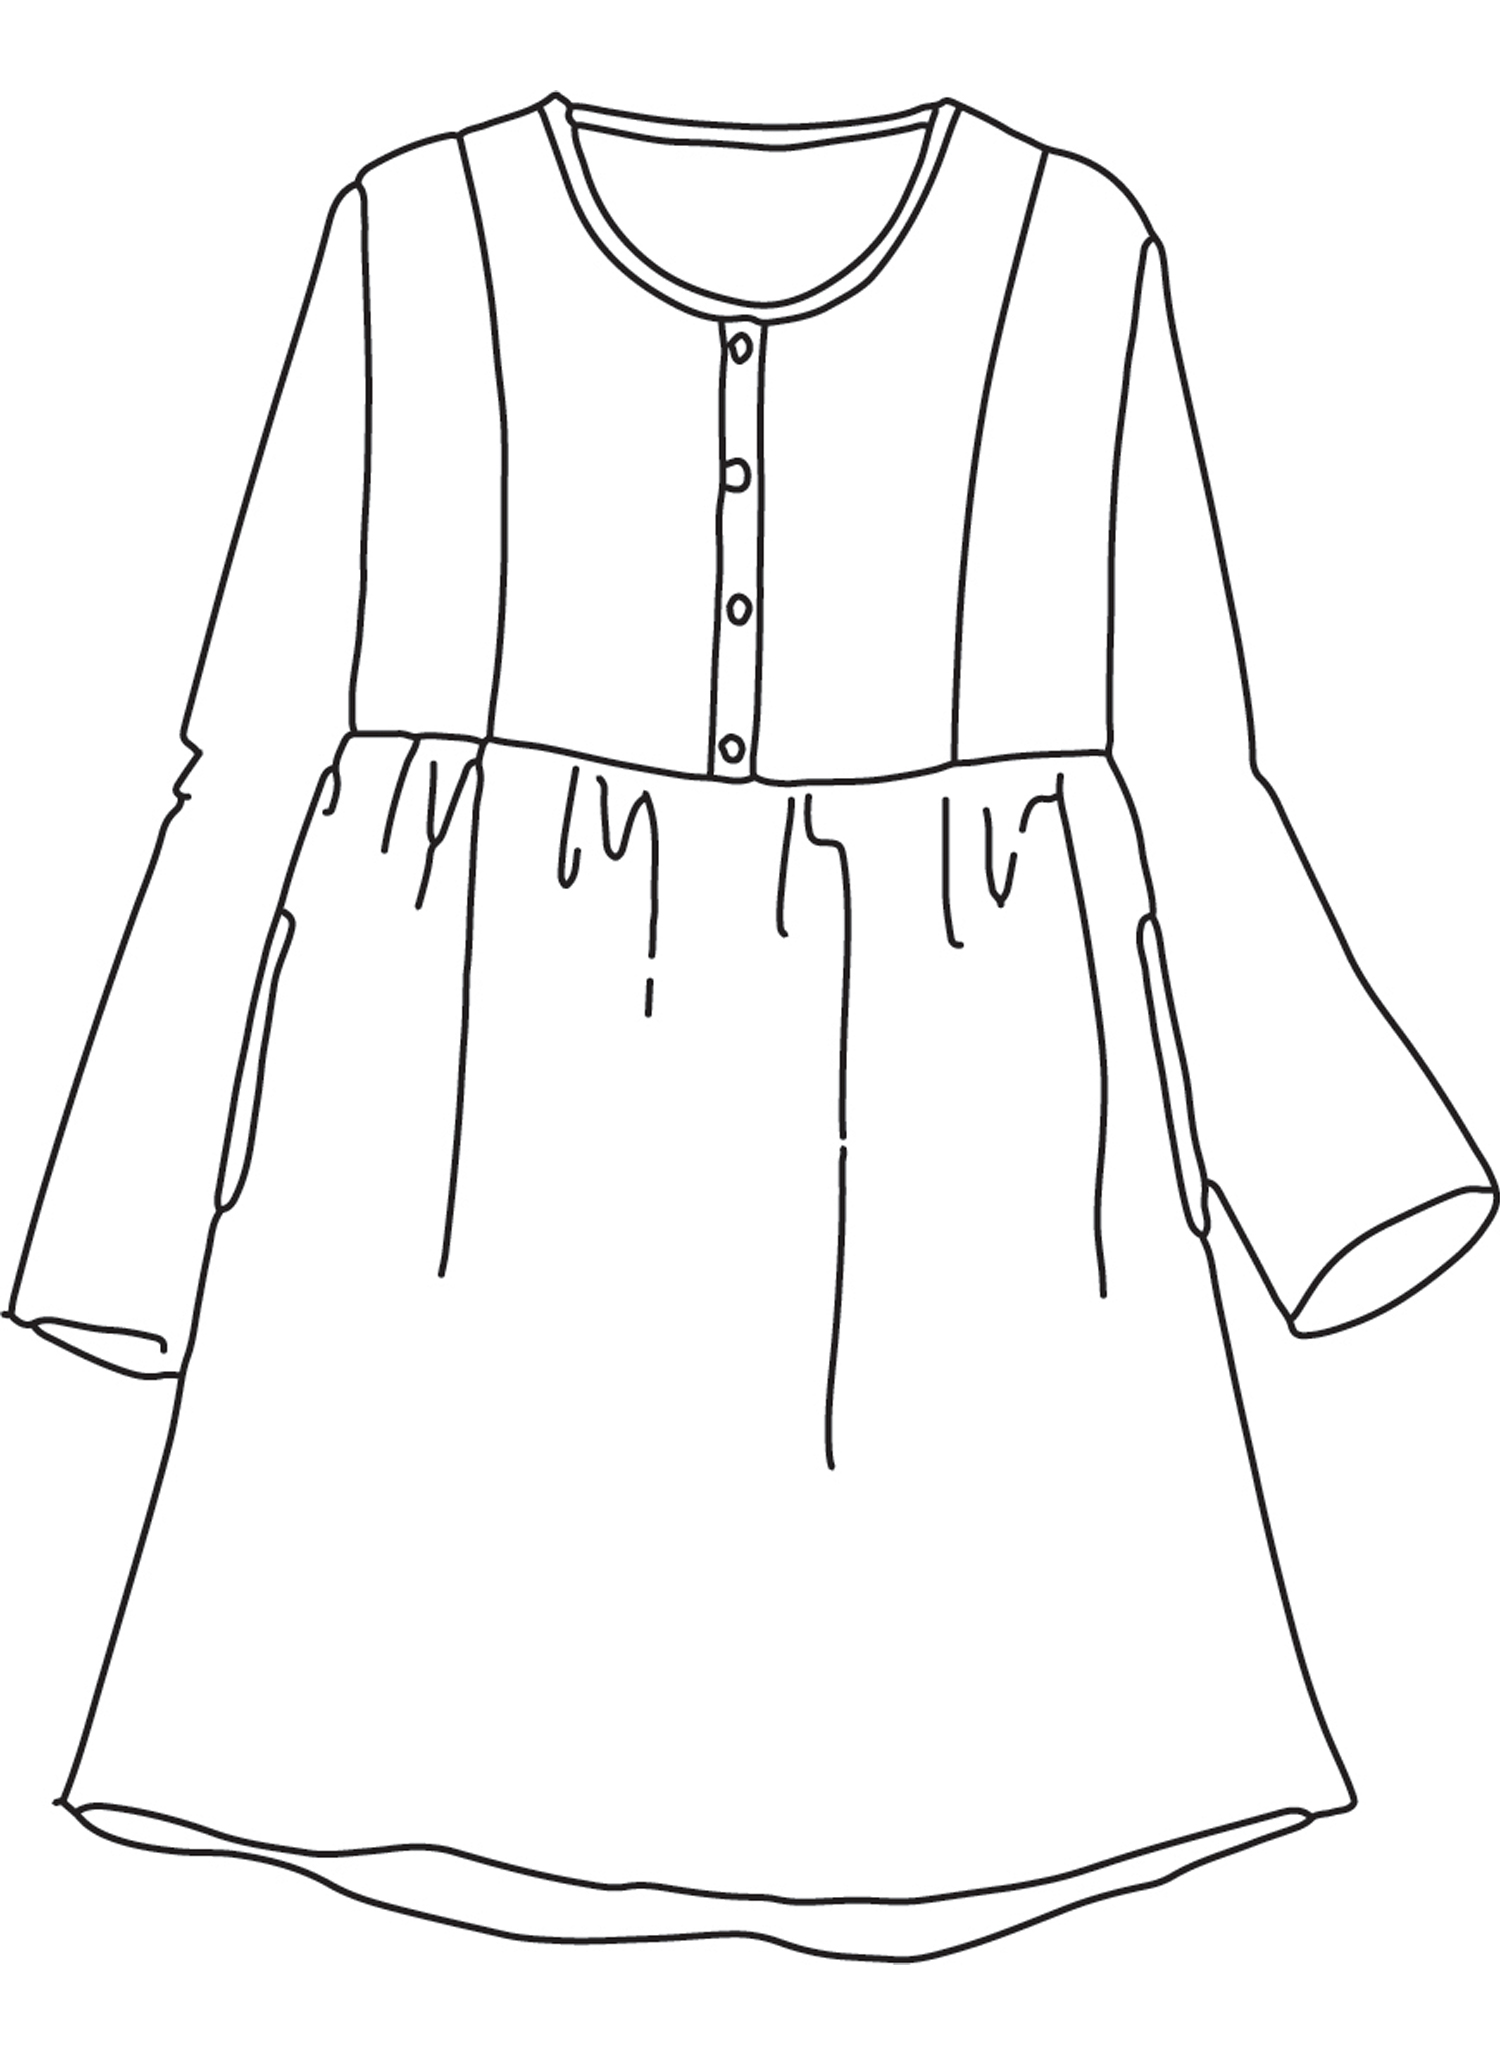 Easy Dress sketch image